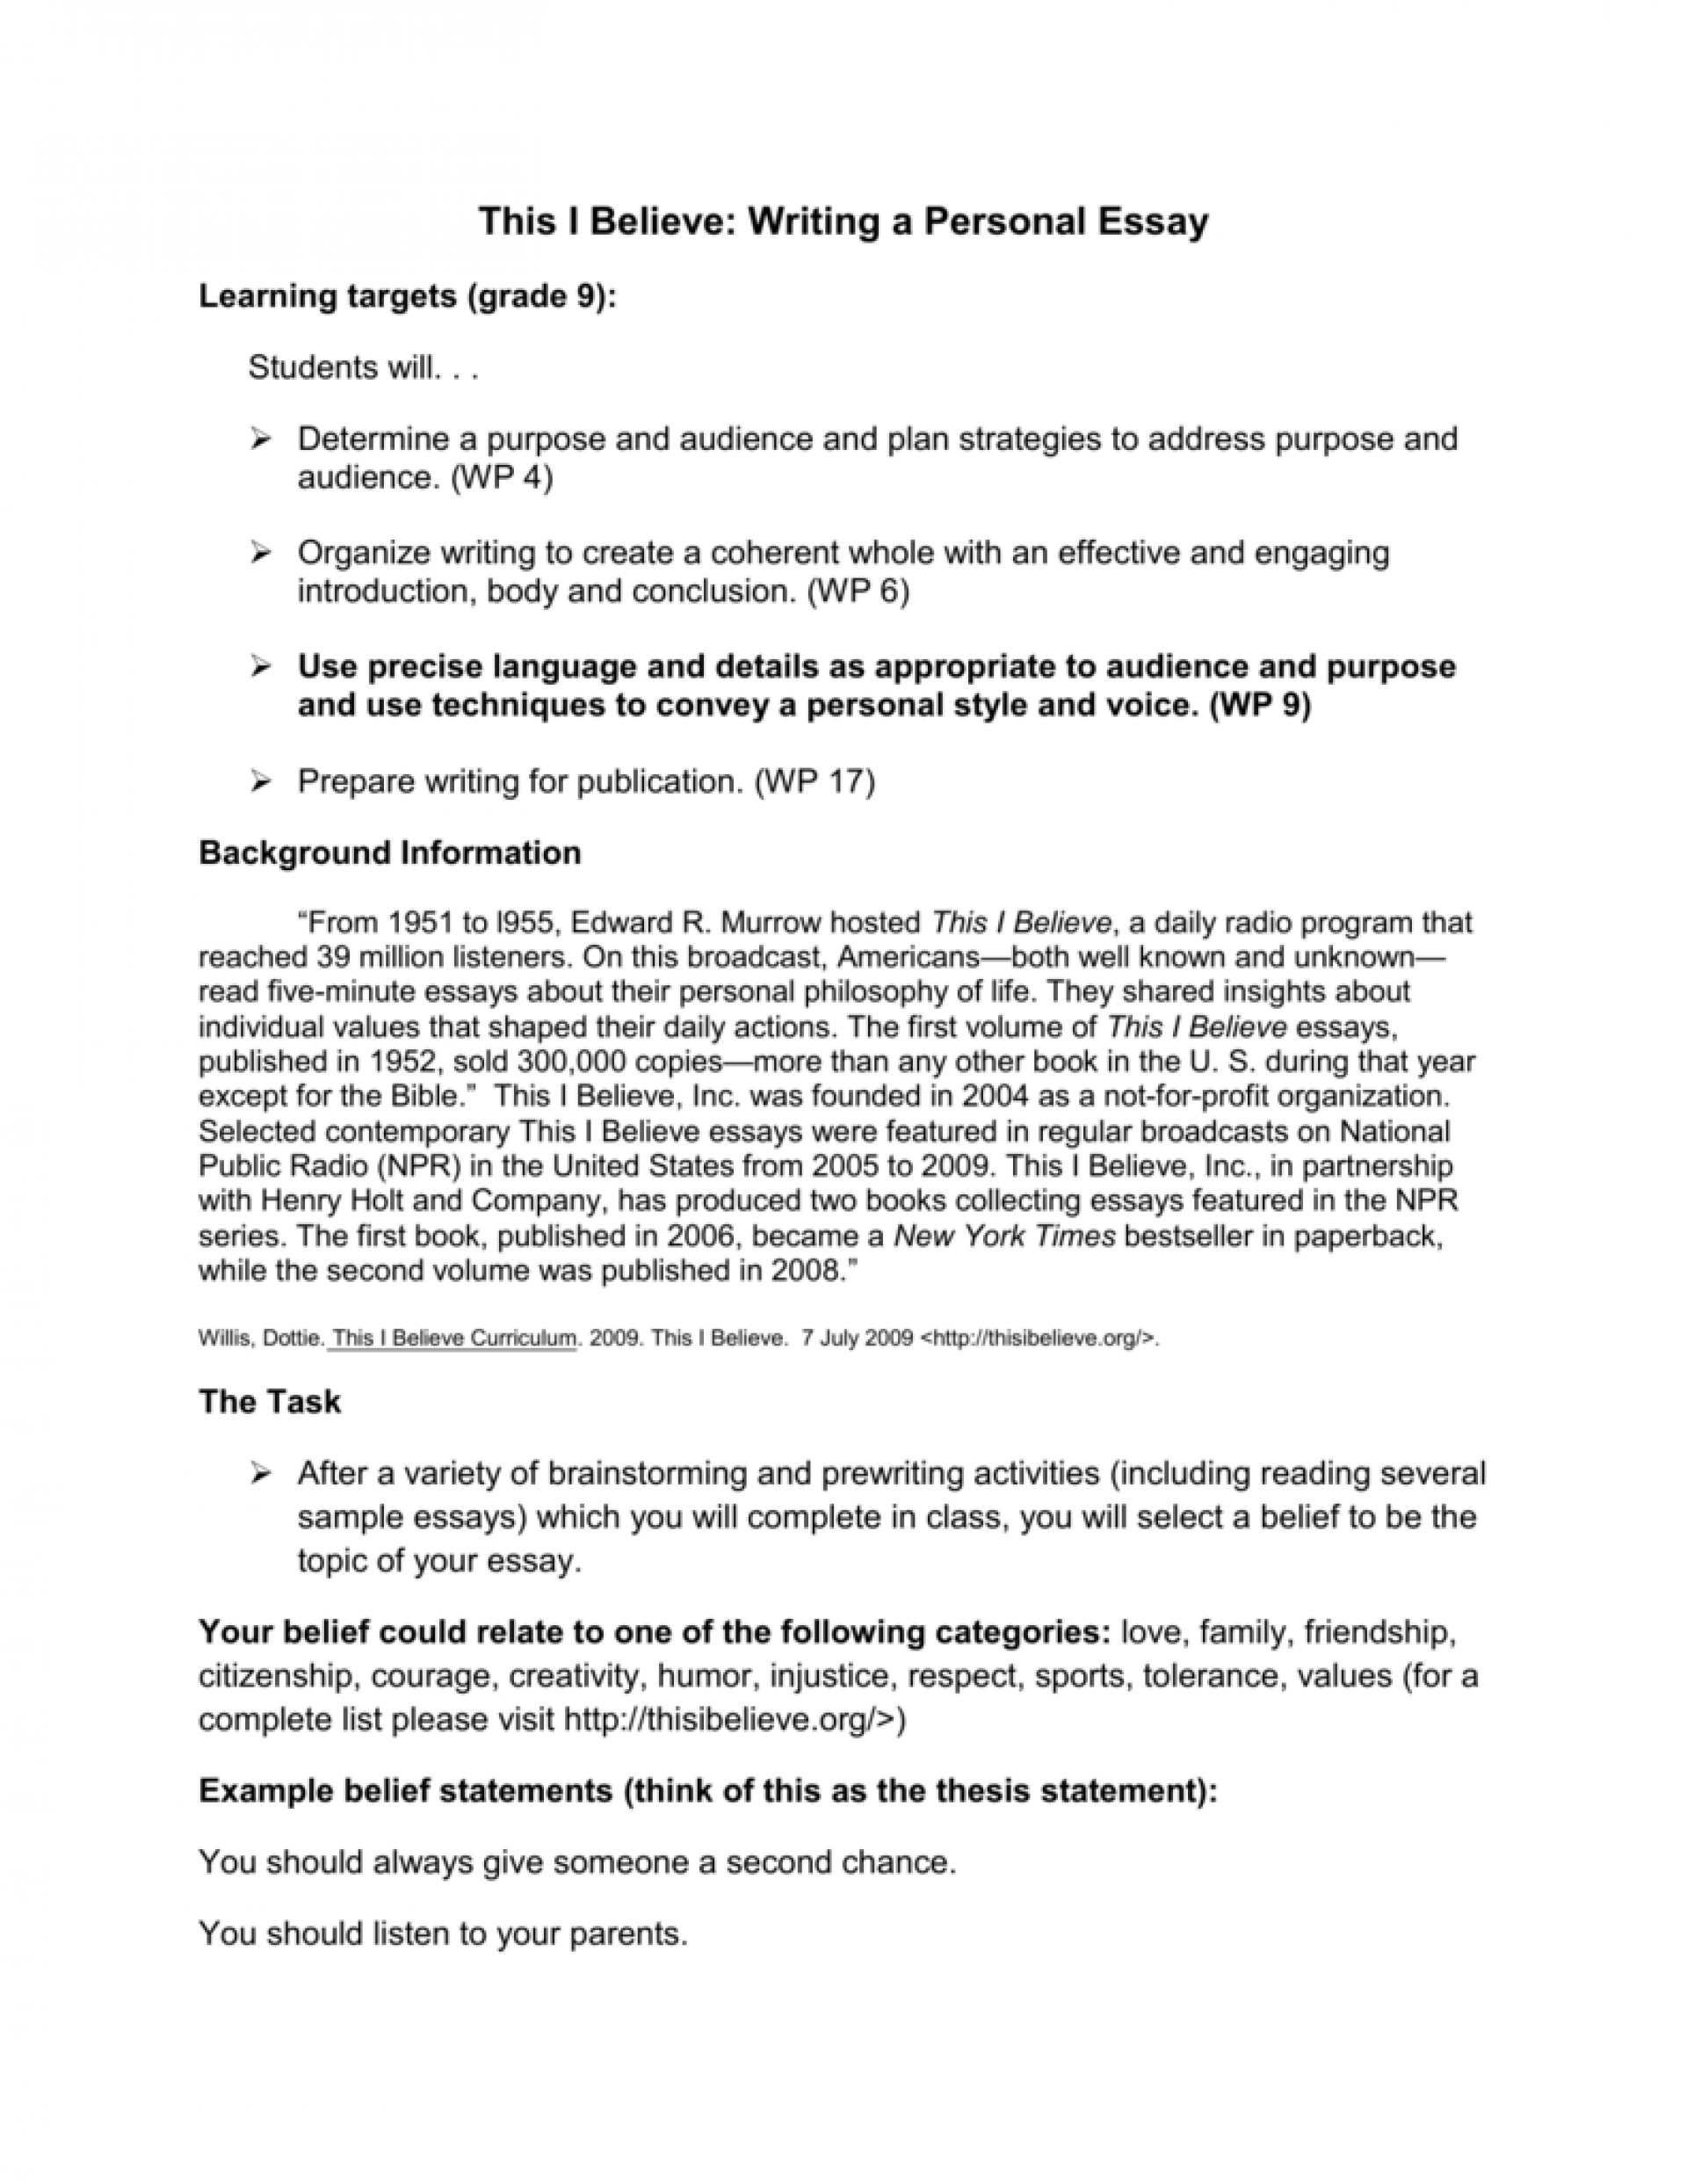 002 Essay Example I Belive Essays 006750112 1 Surprising Believe About Sports Ideas 1920